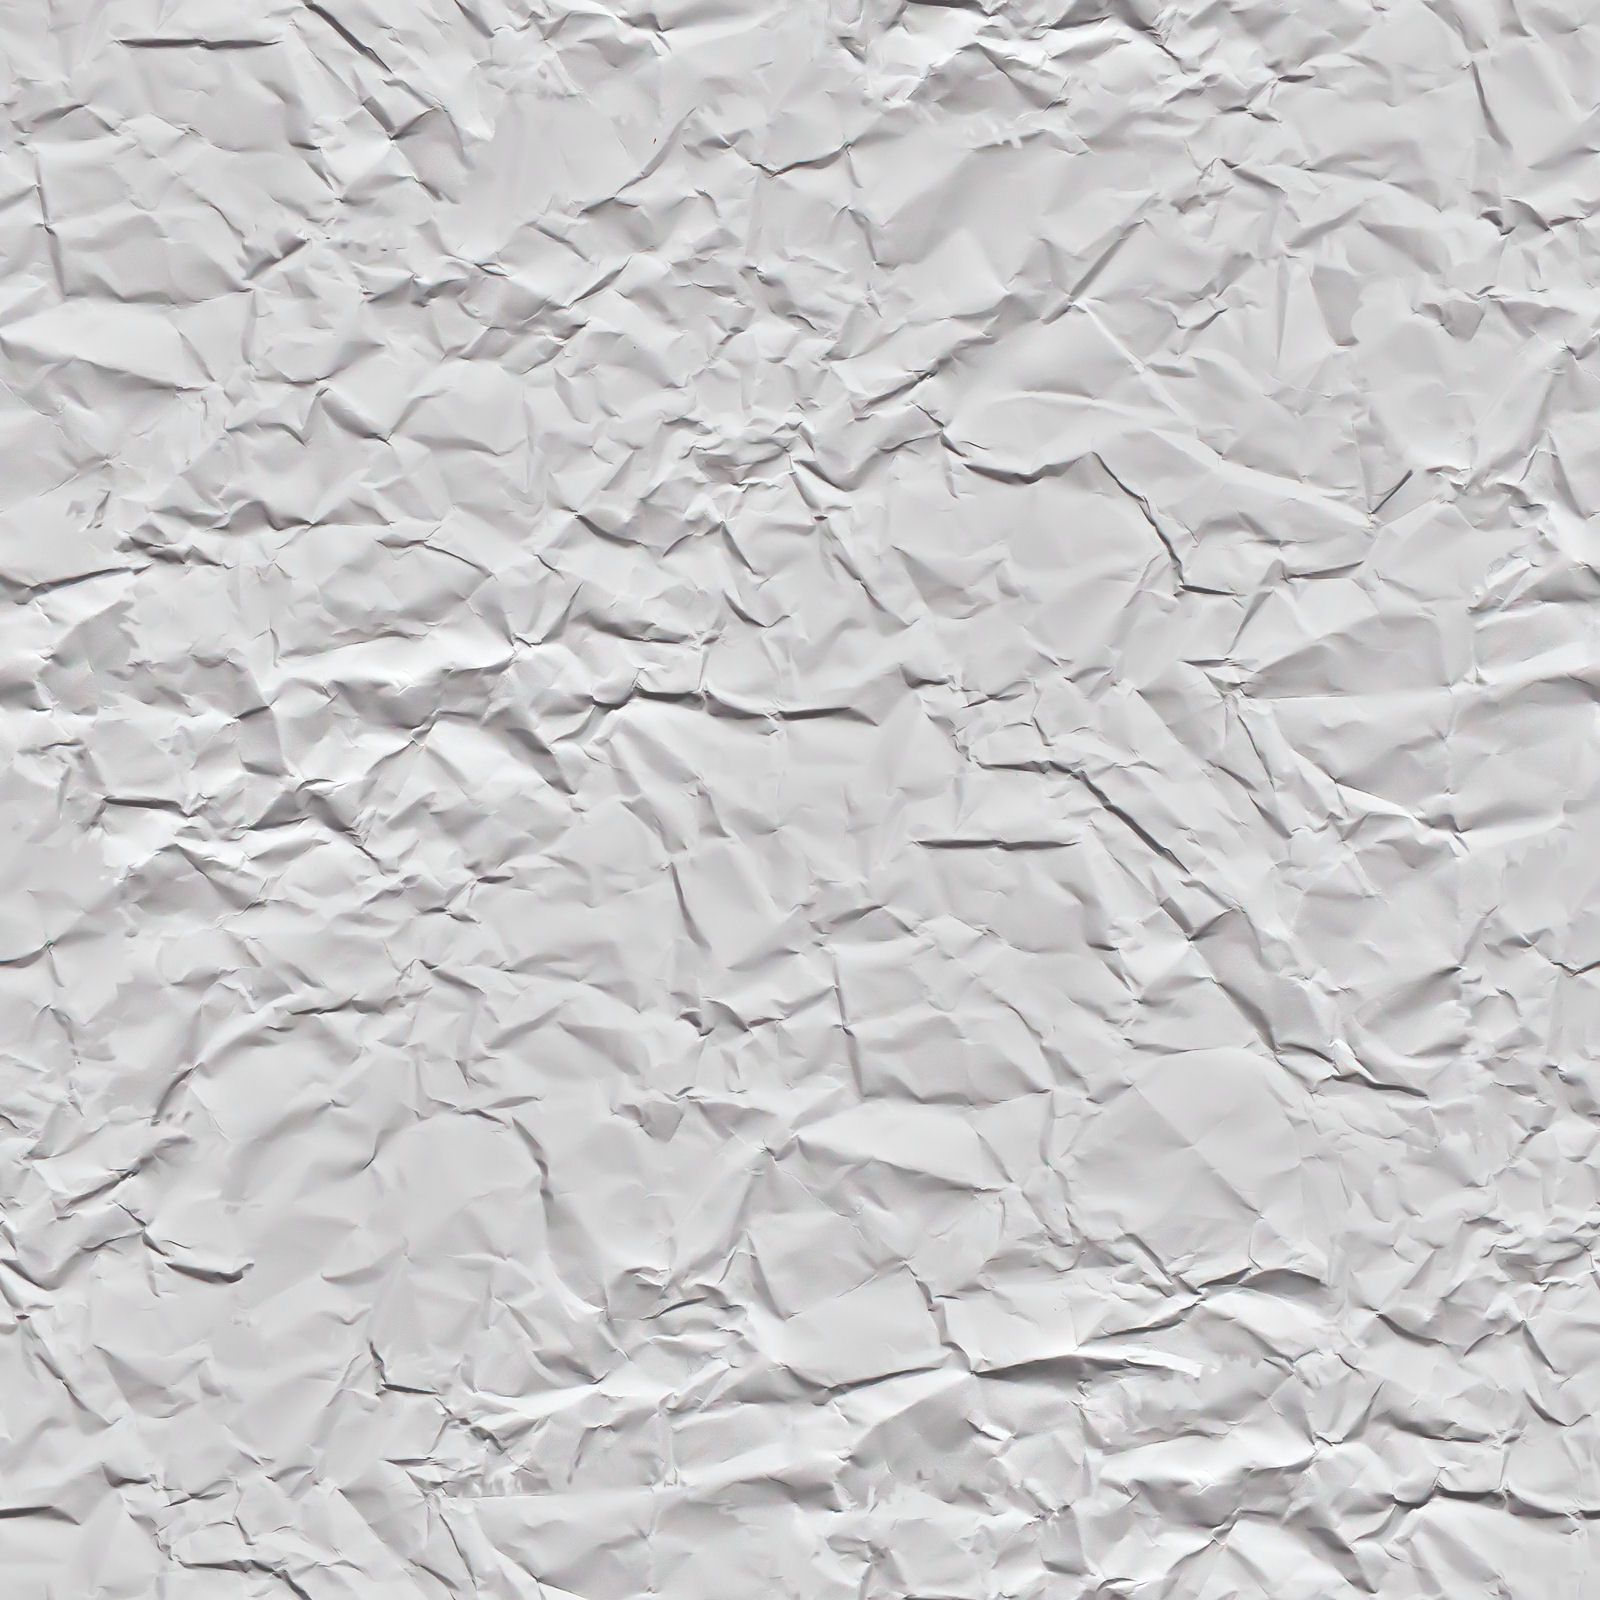 Paper crease | Textured background, Gray texture background, Paper texture